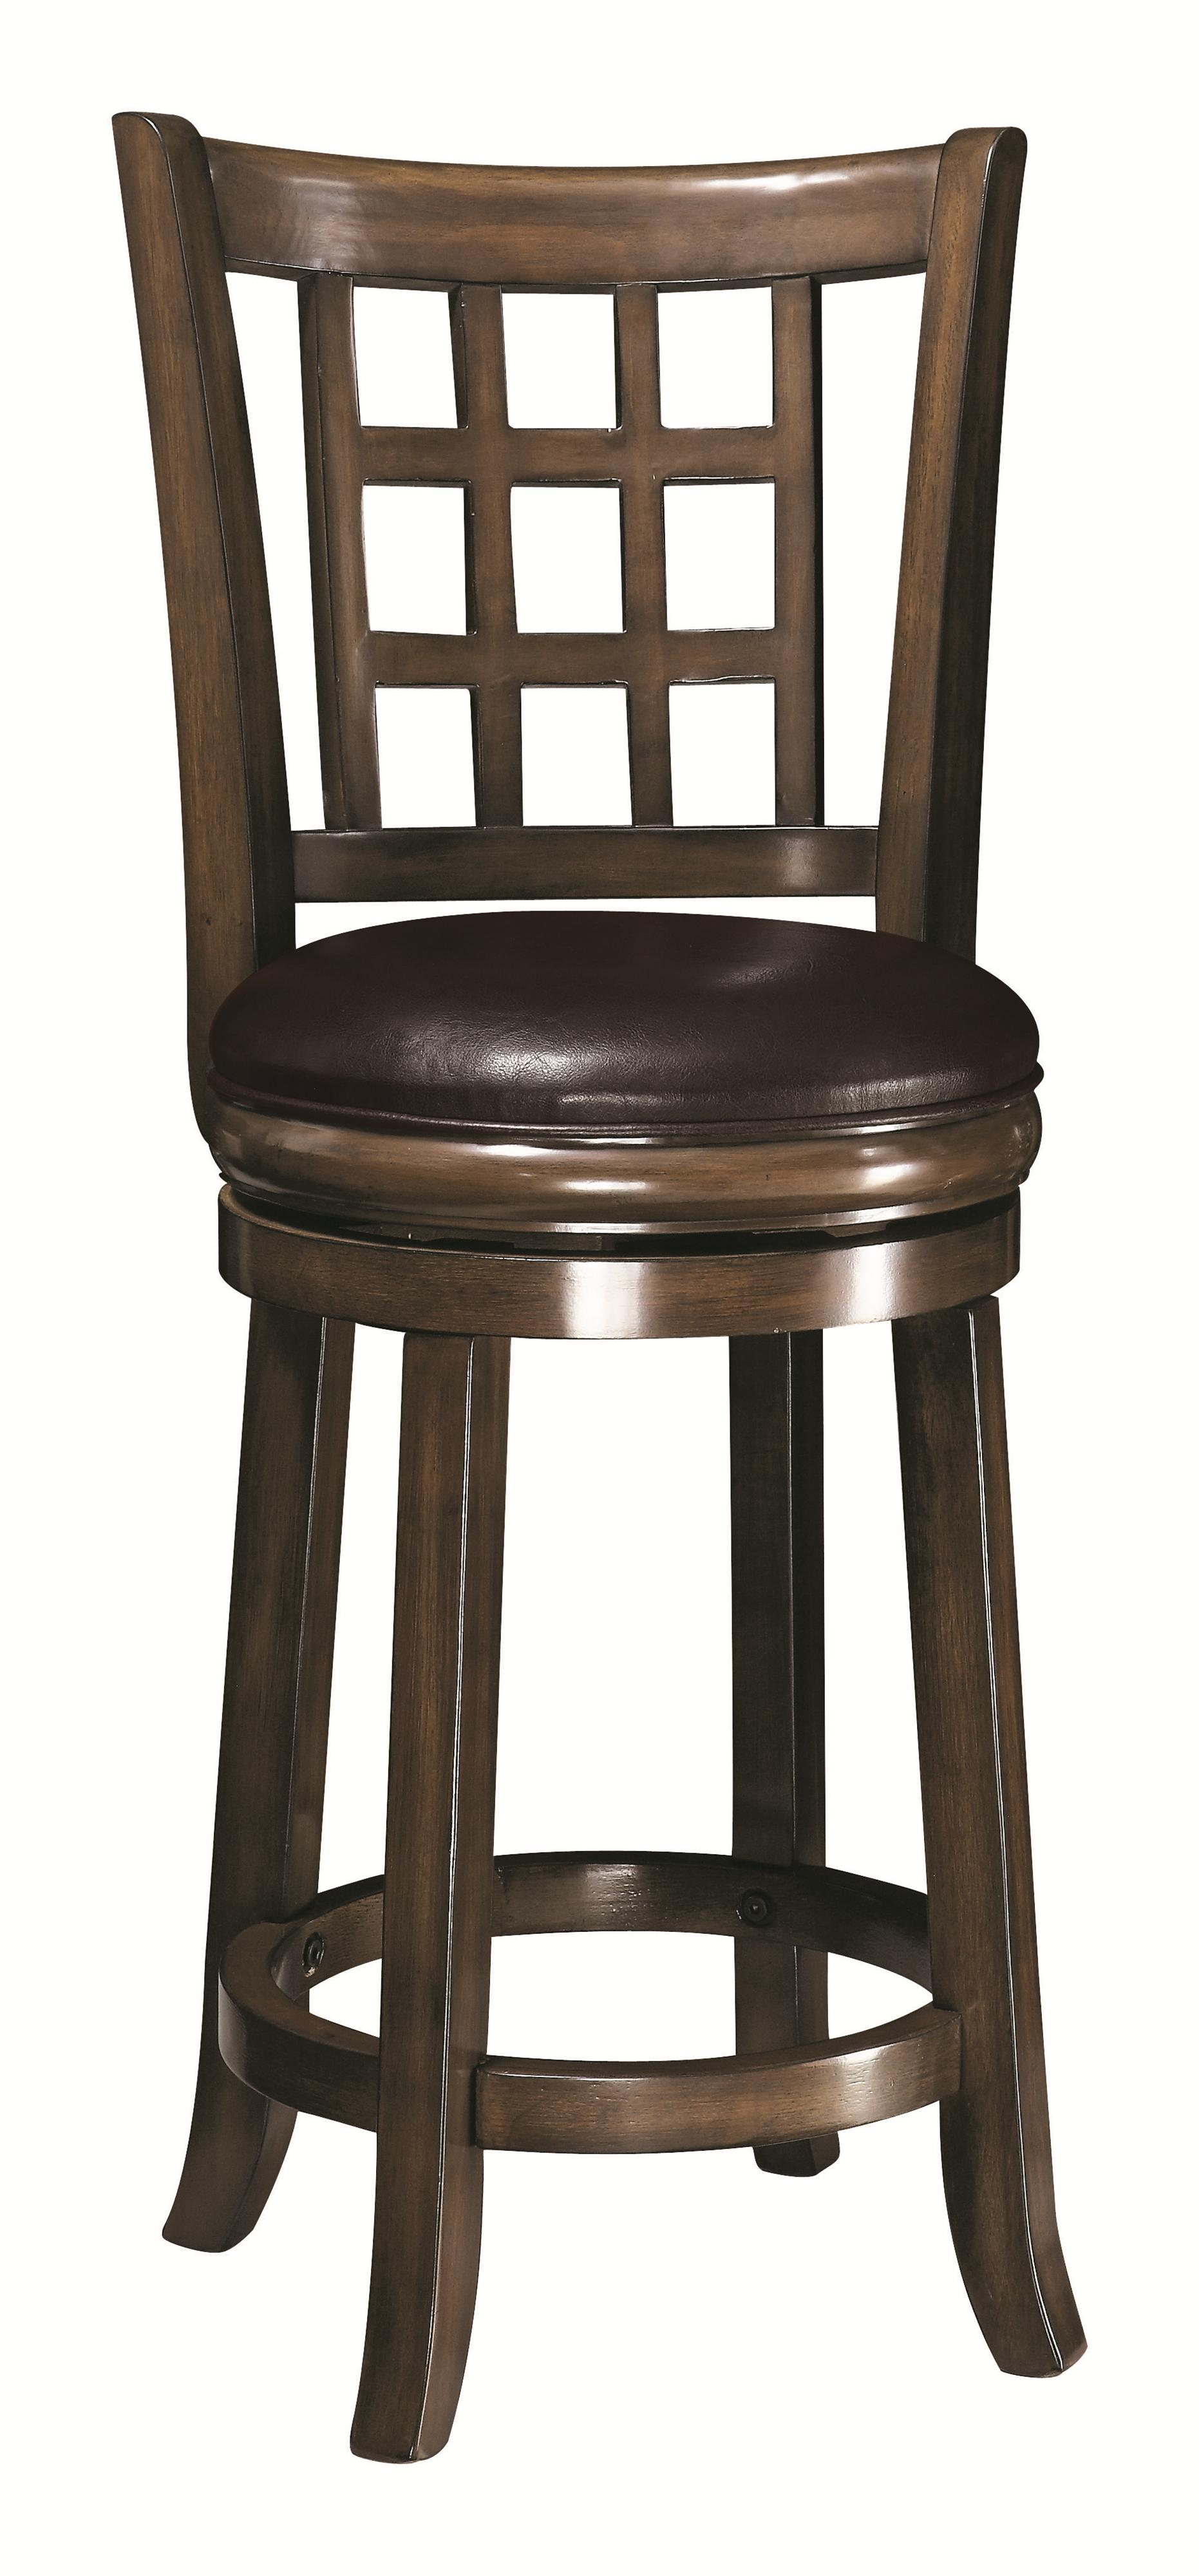 "Coaster Dining Chairs and Bar Stools 24""H Bar Stool - Item Number: 102639"